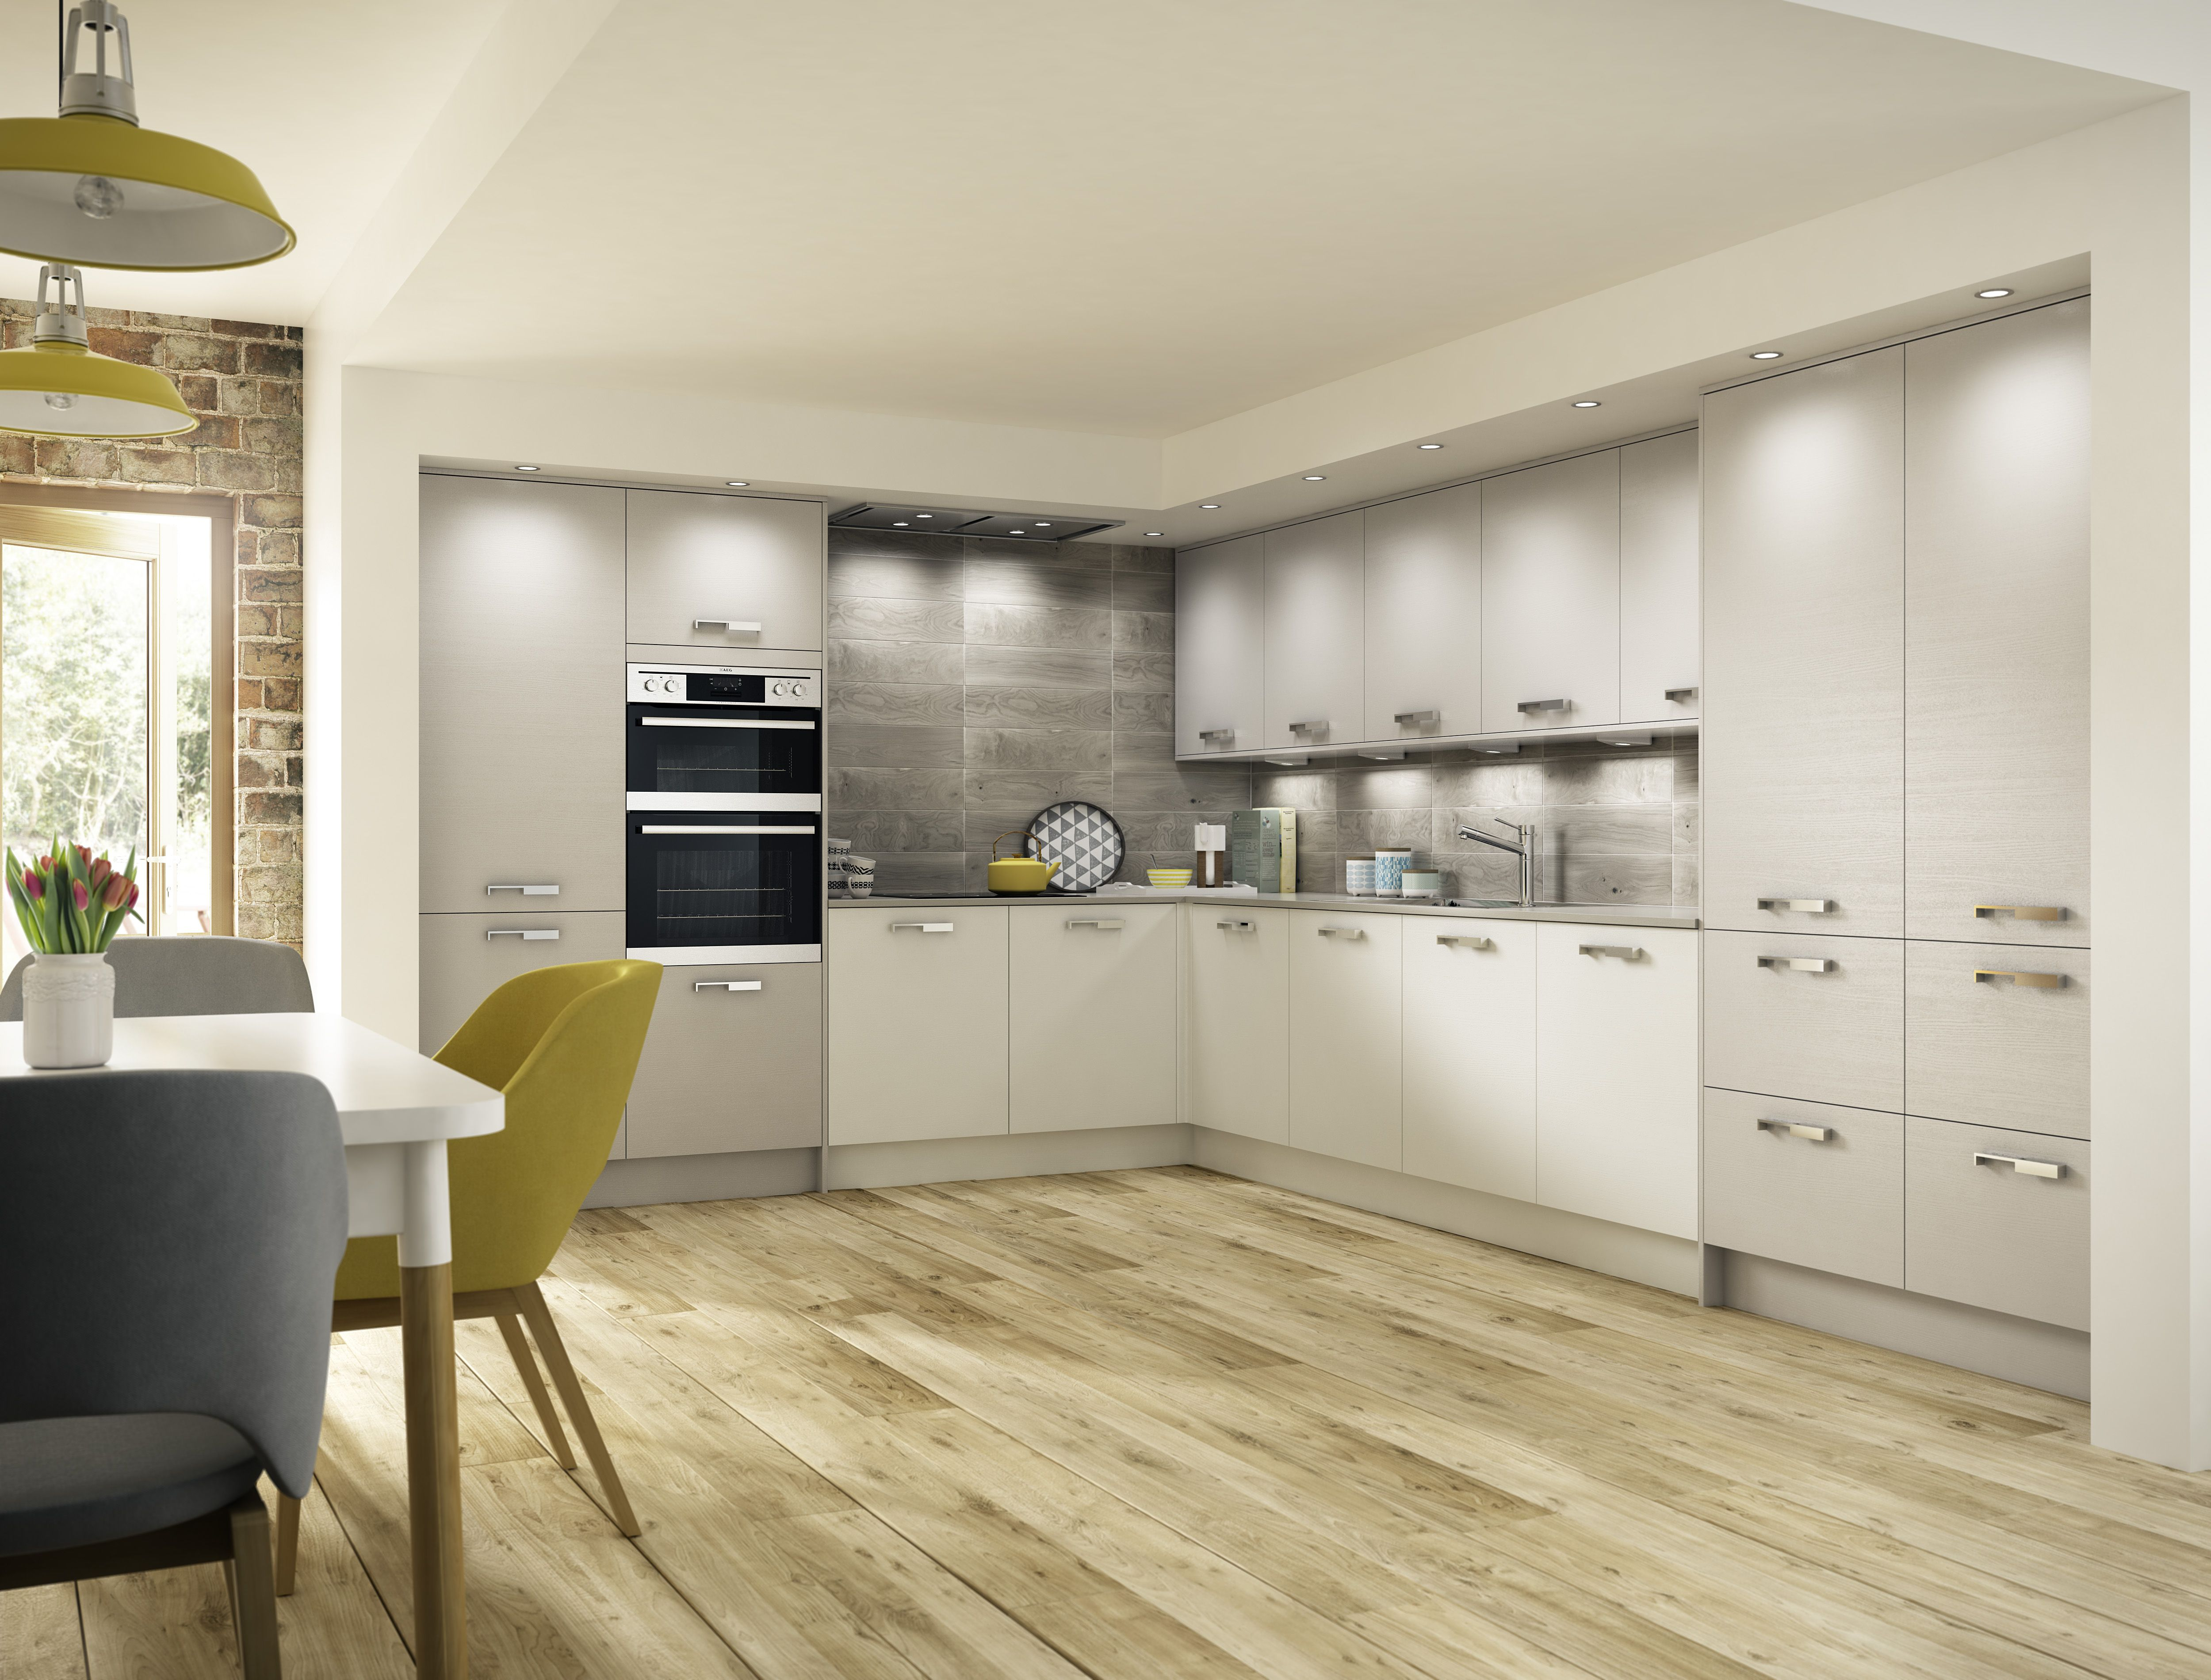 Kitchen Design Yeovil amazing redrow shaker kitchen | homes | pinterest | shaker kitchen